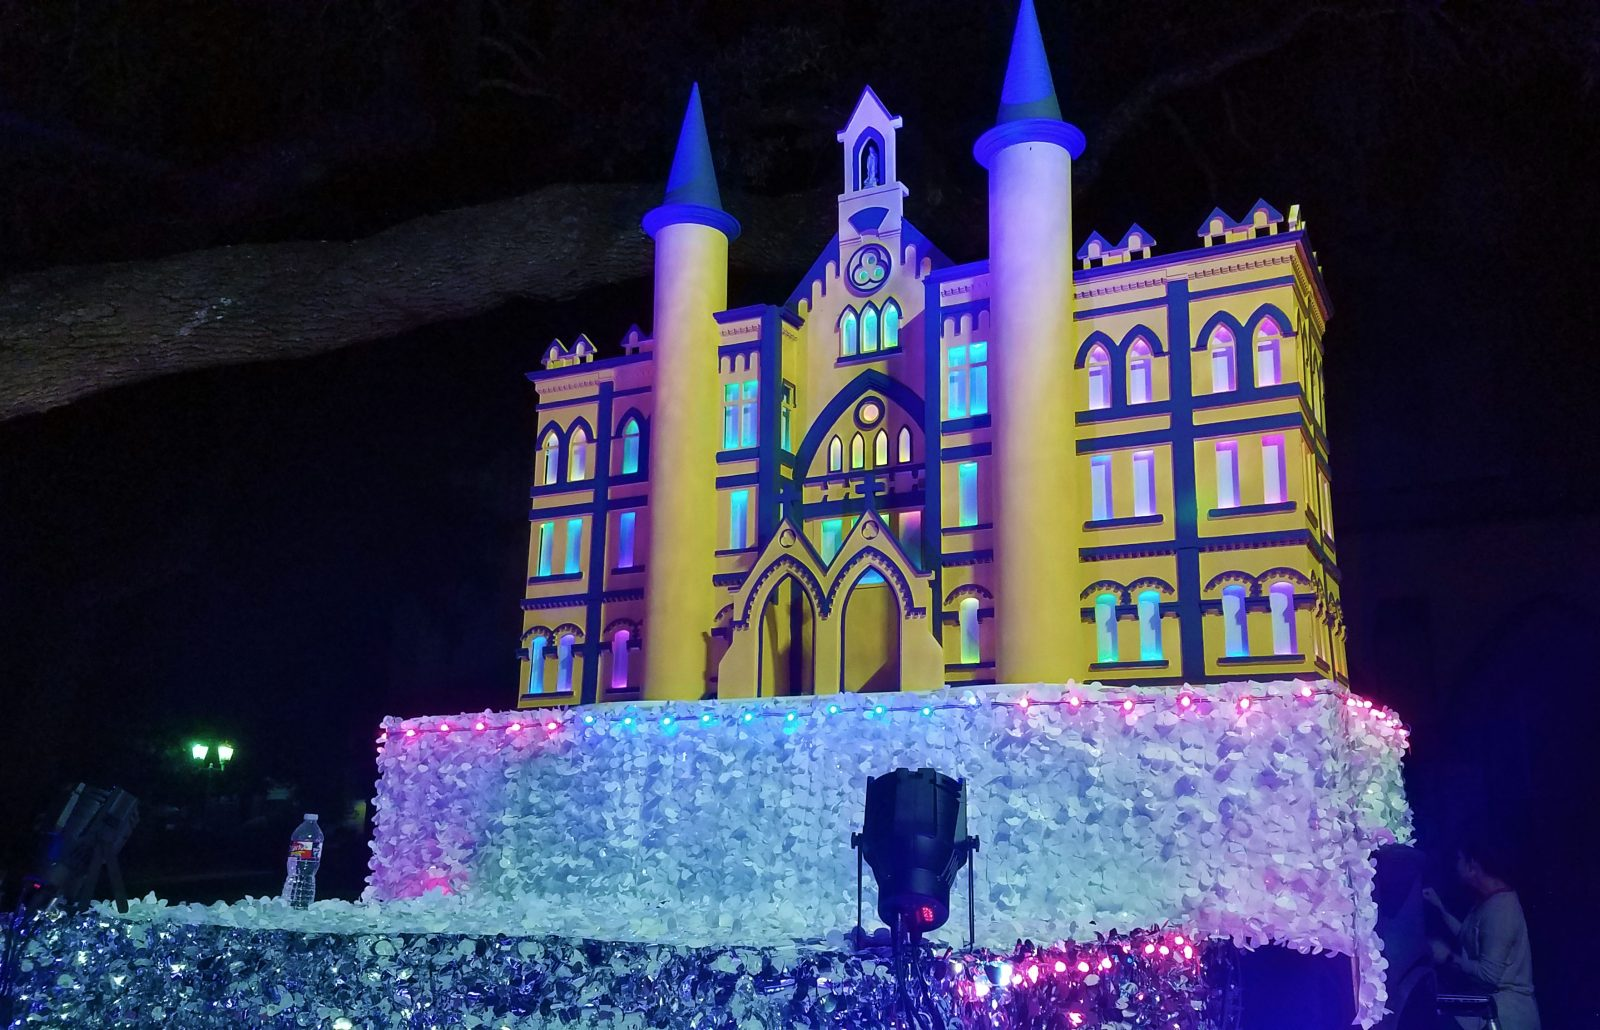 2018 OLLU Float Building Model Illuminated